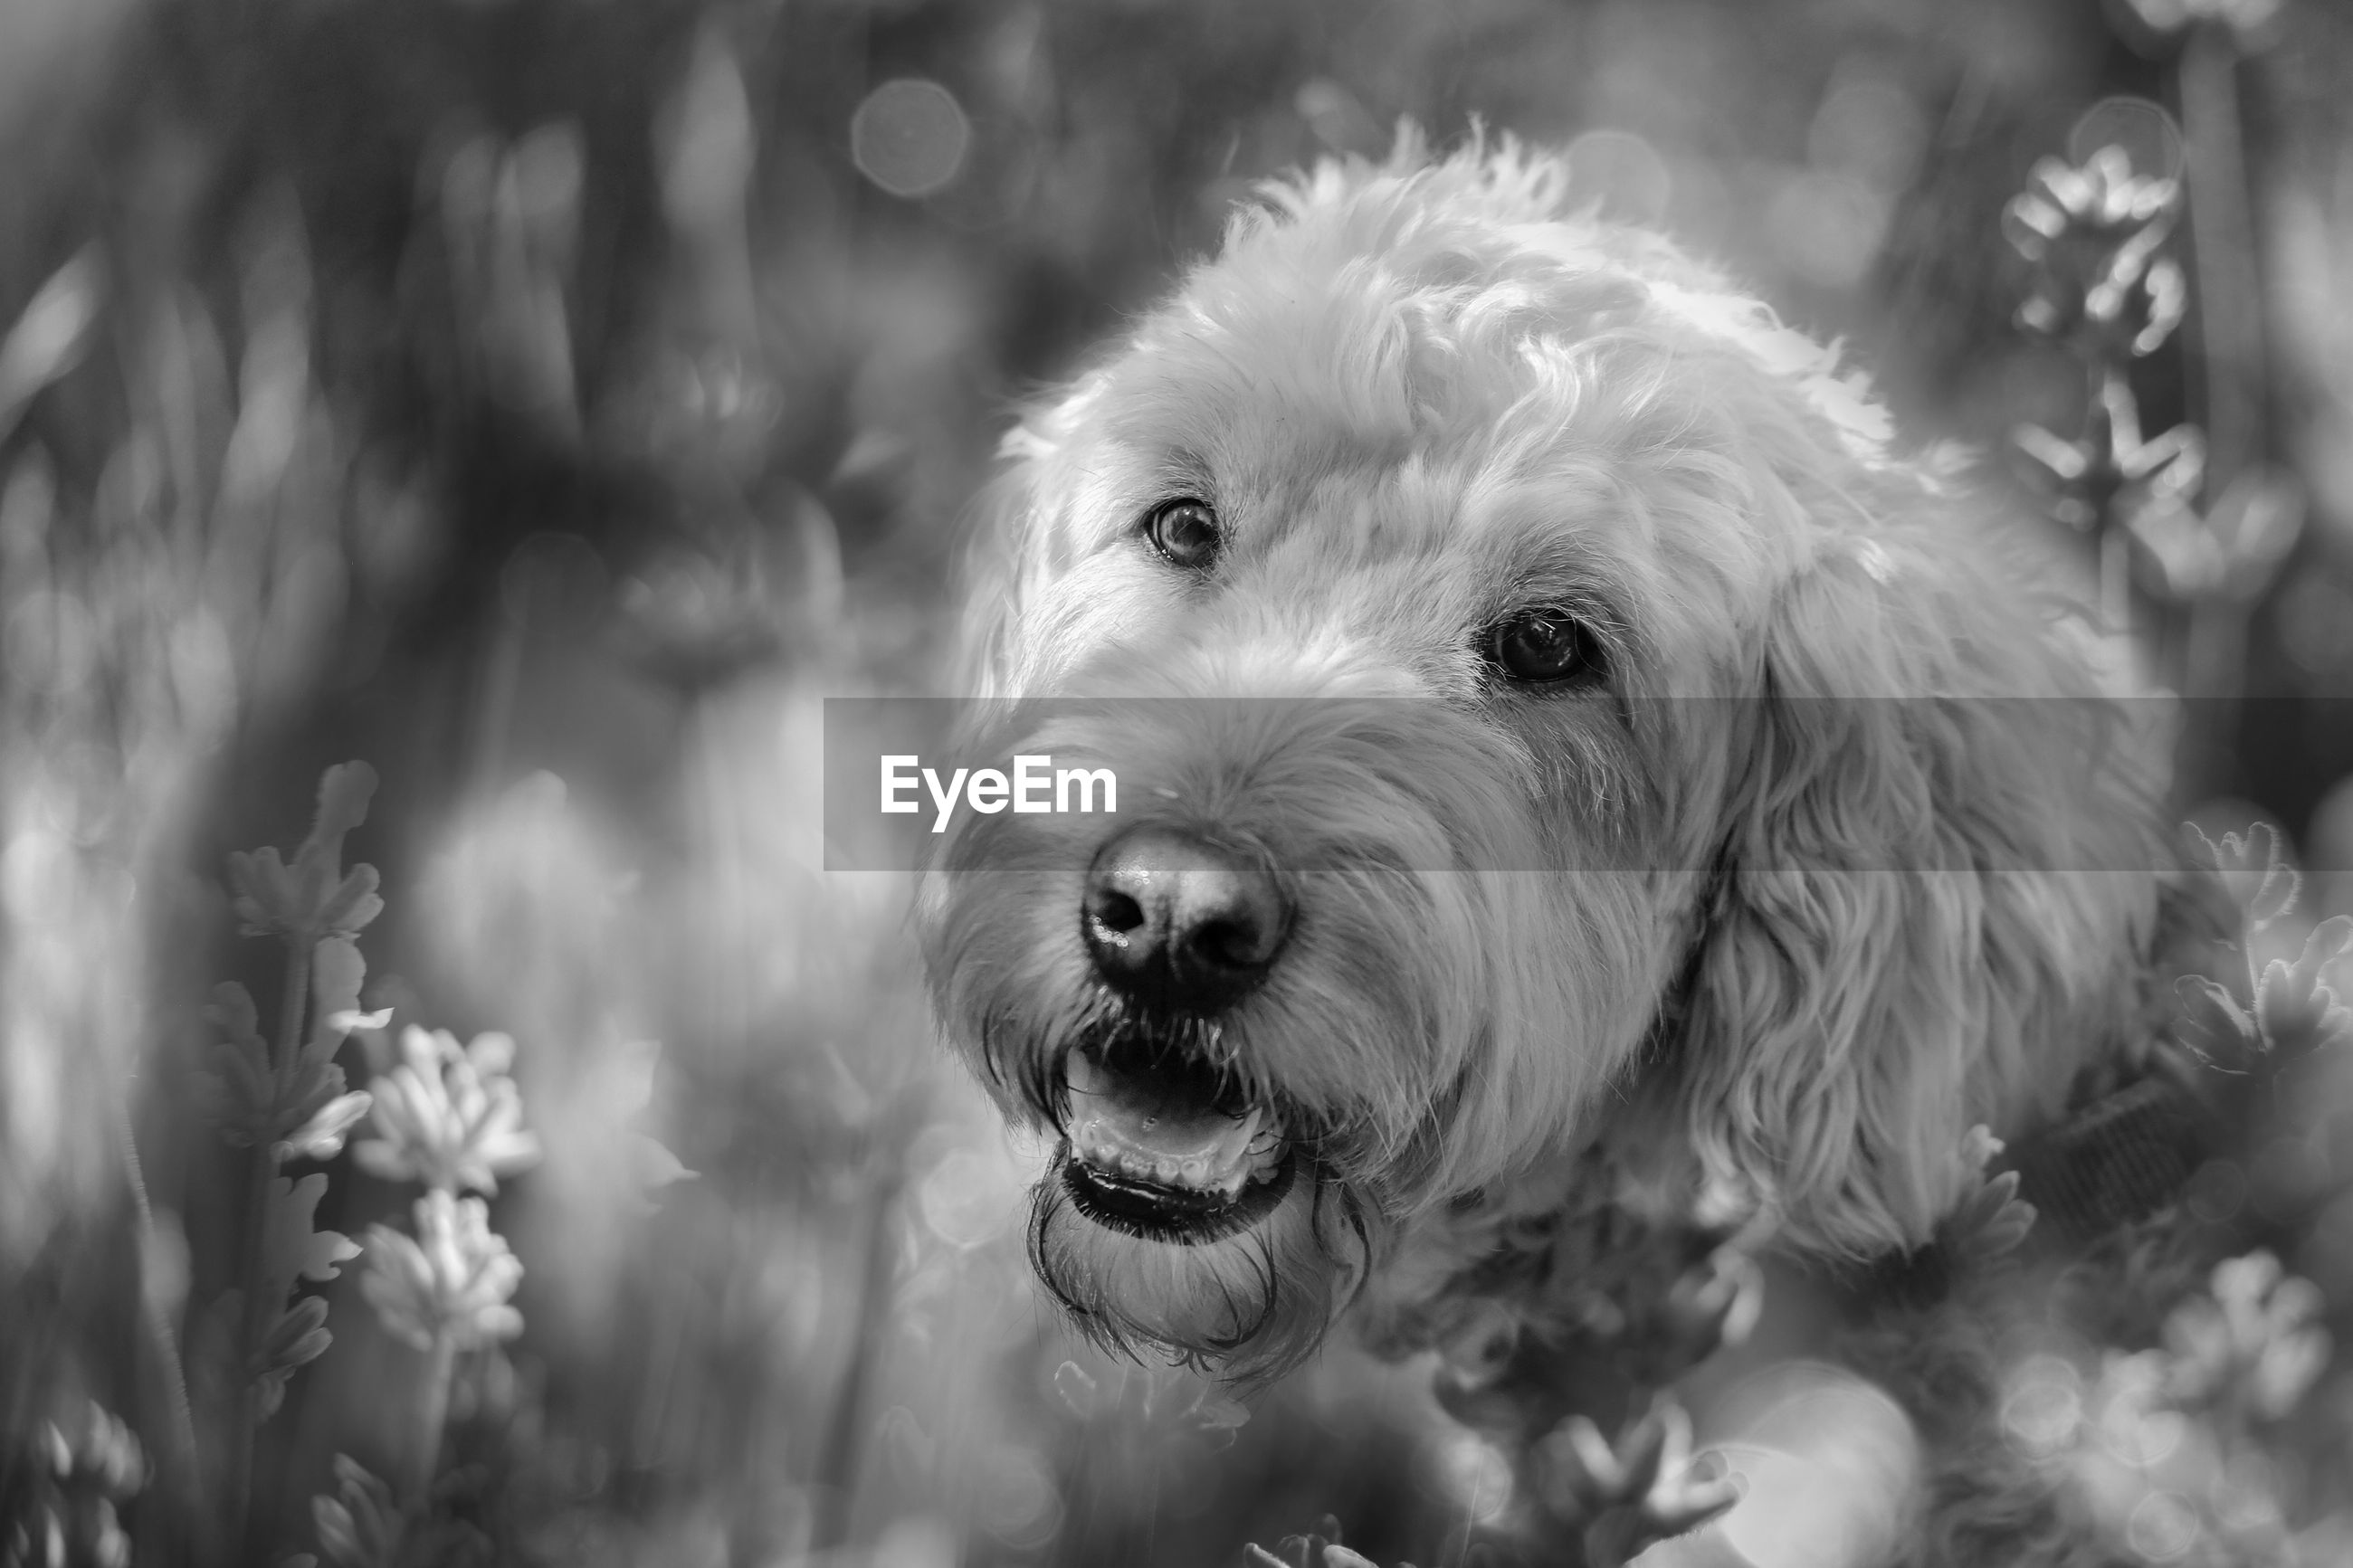 CLOSE-UP PORTRAIT OF A DOG OUTDOORS